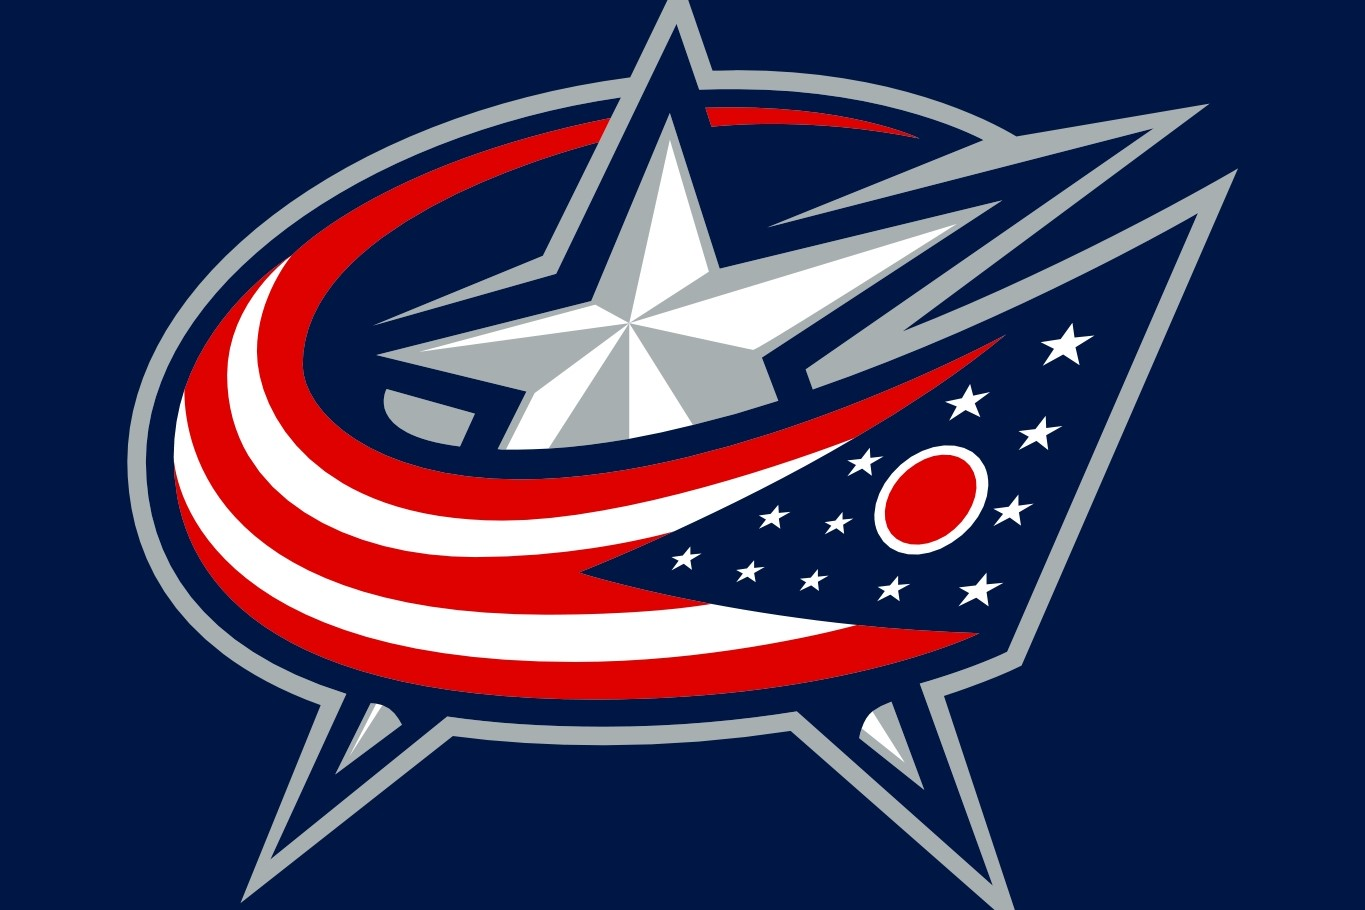 Blue Jackets take a Important Over the Rangers.